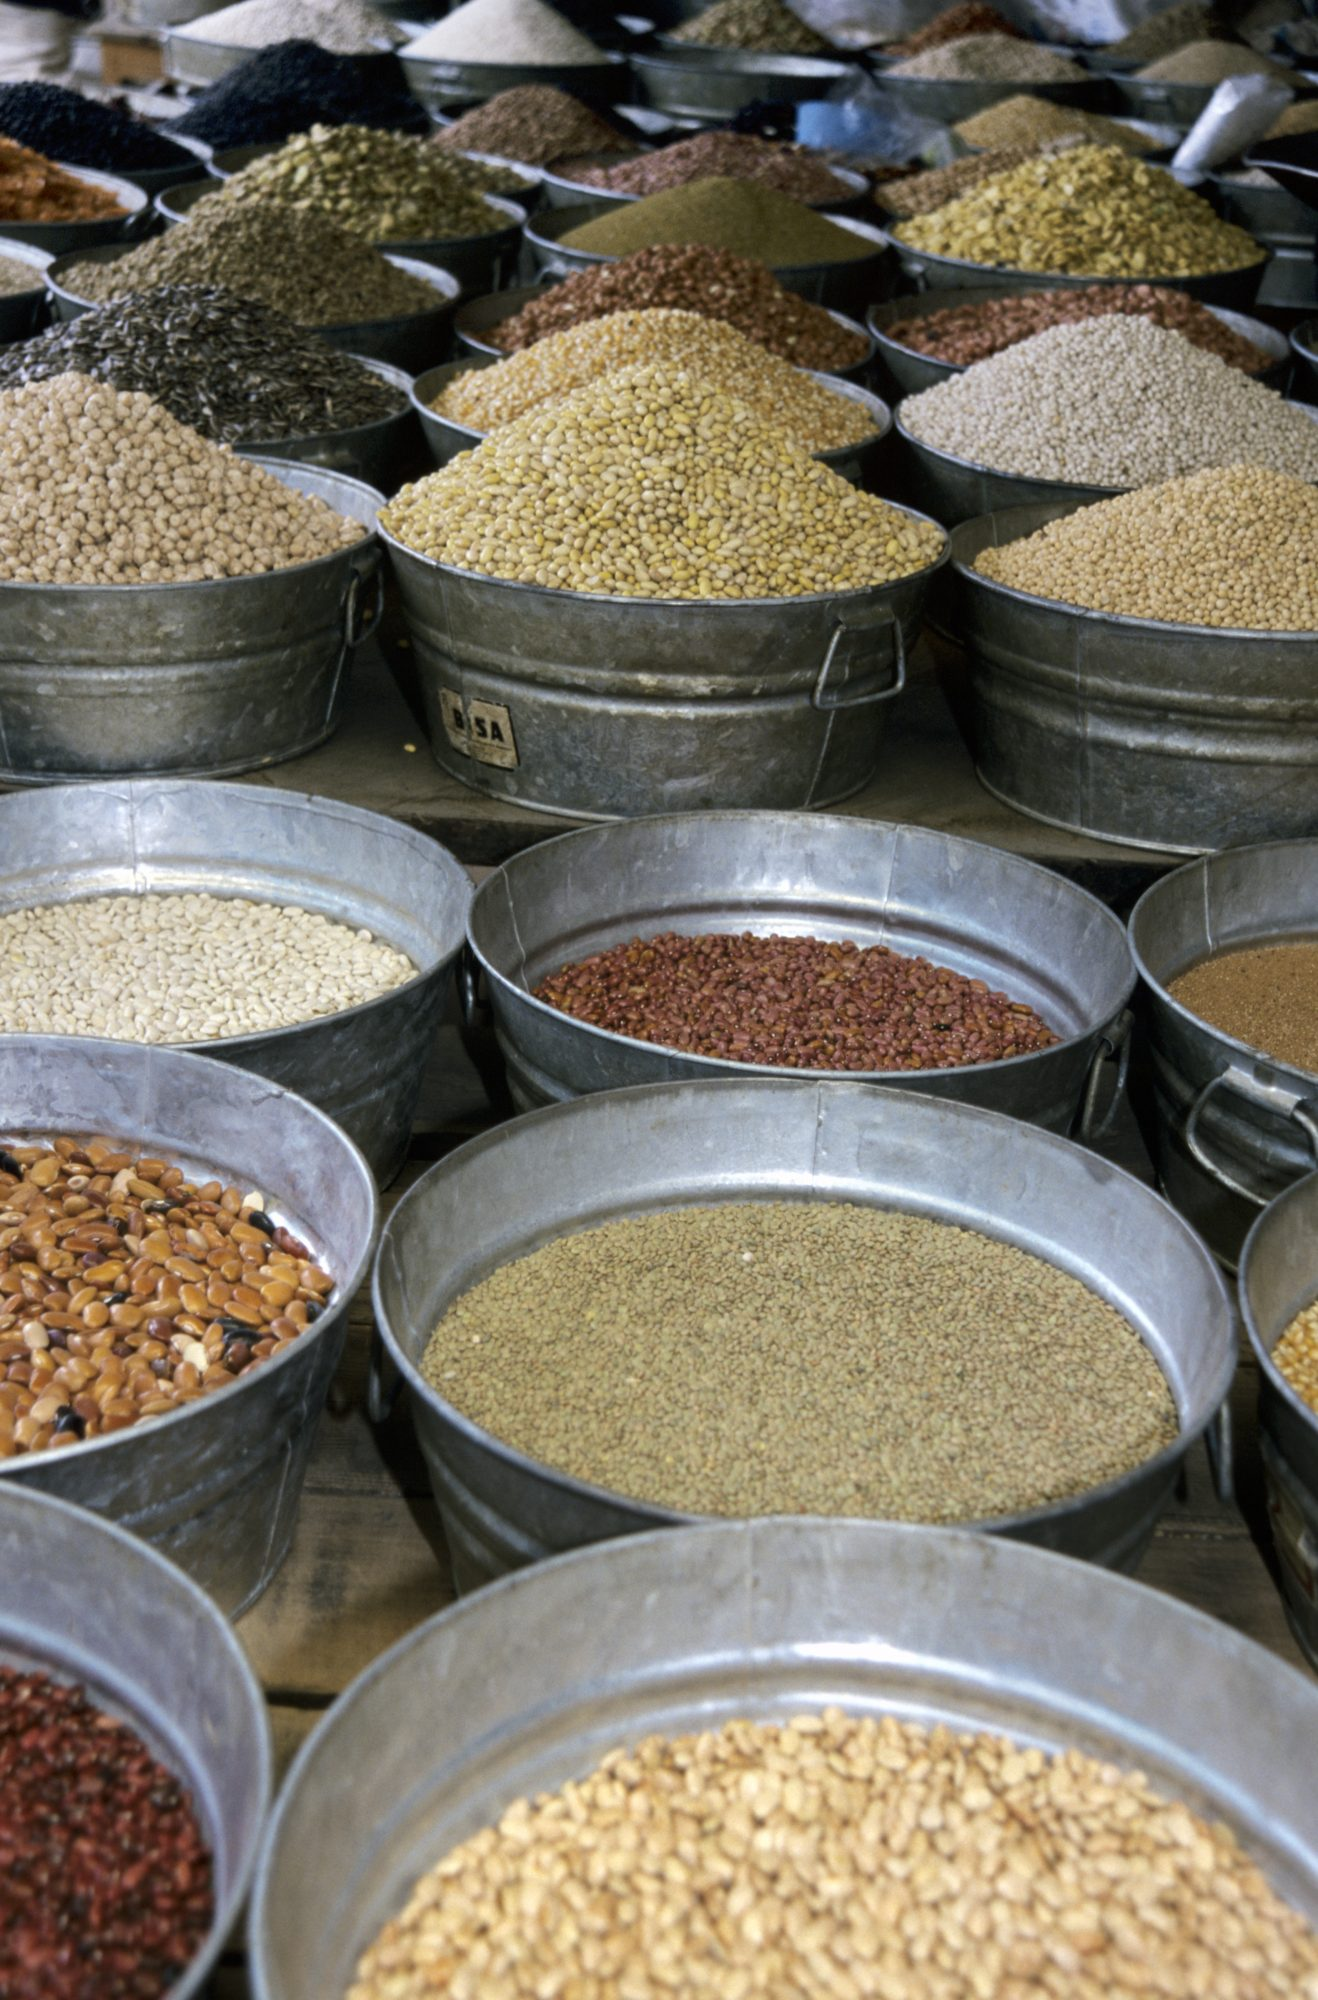 Tubs of grain and seed in a Oaxacan market, Oaxaca, Mexico